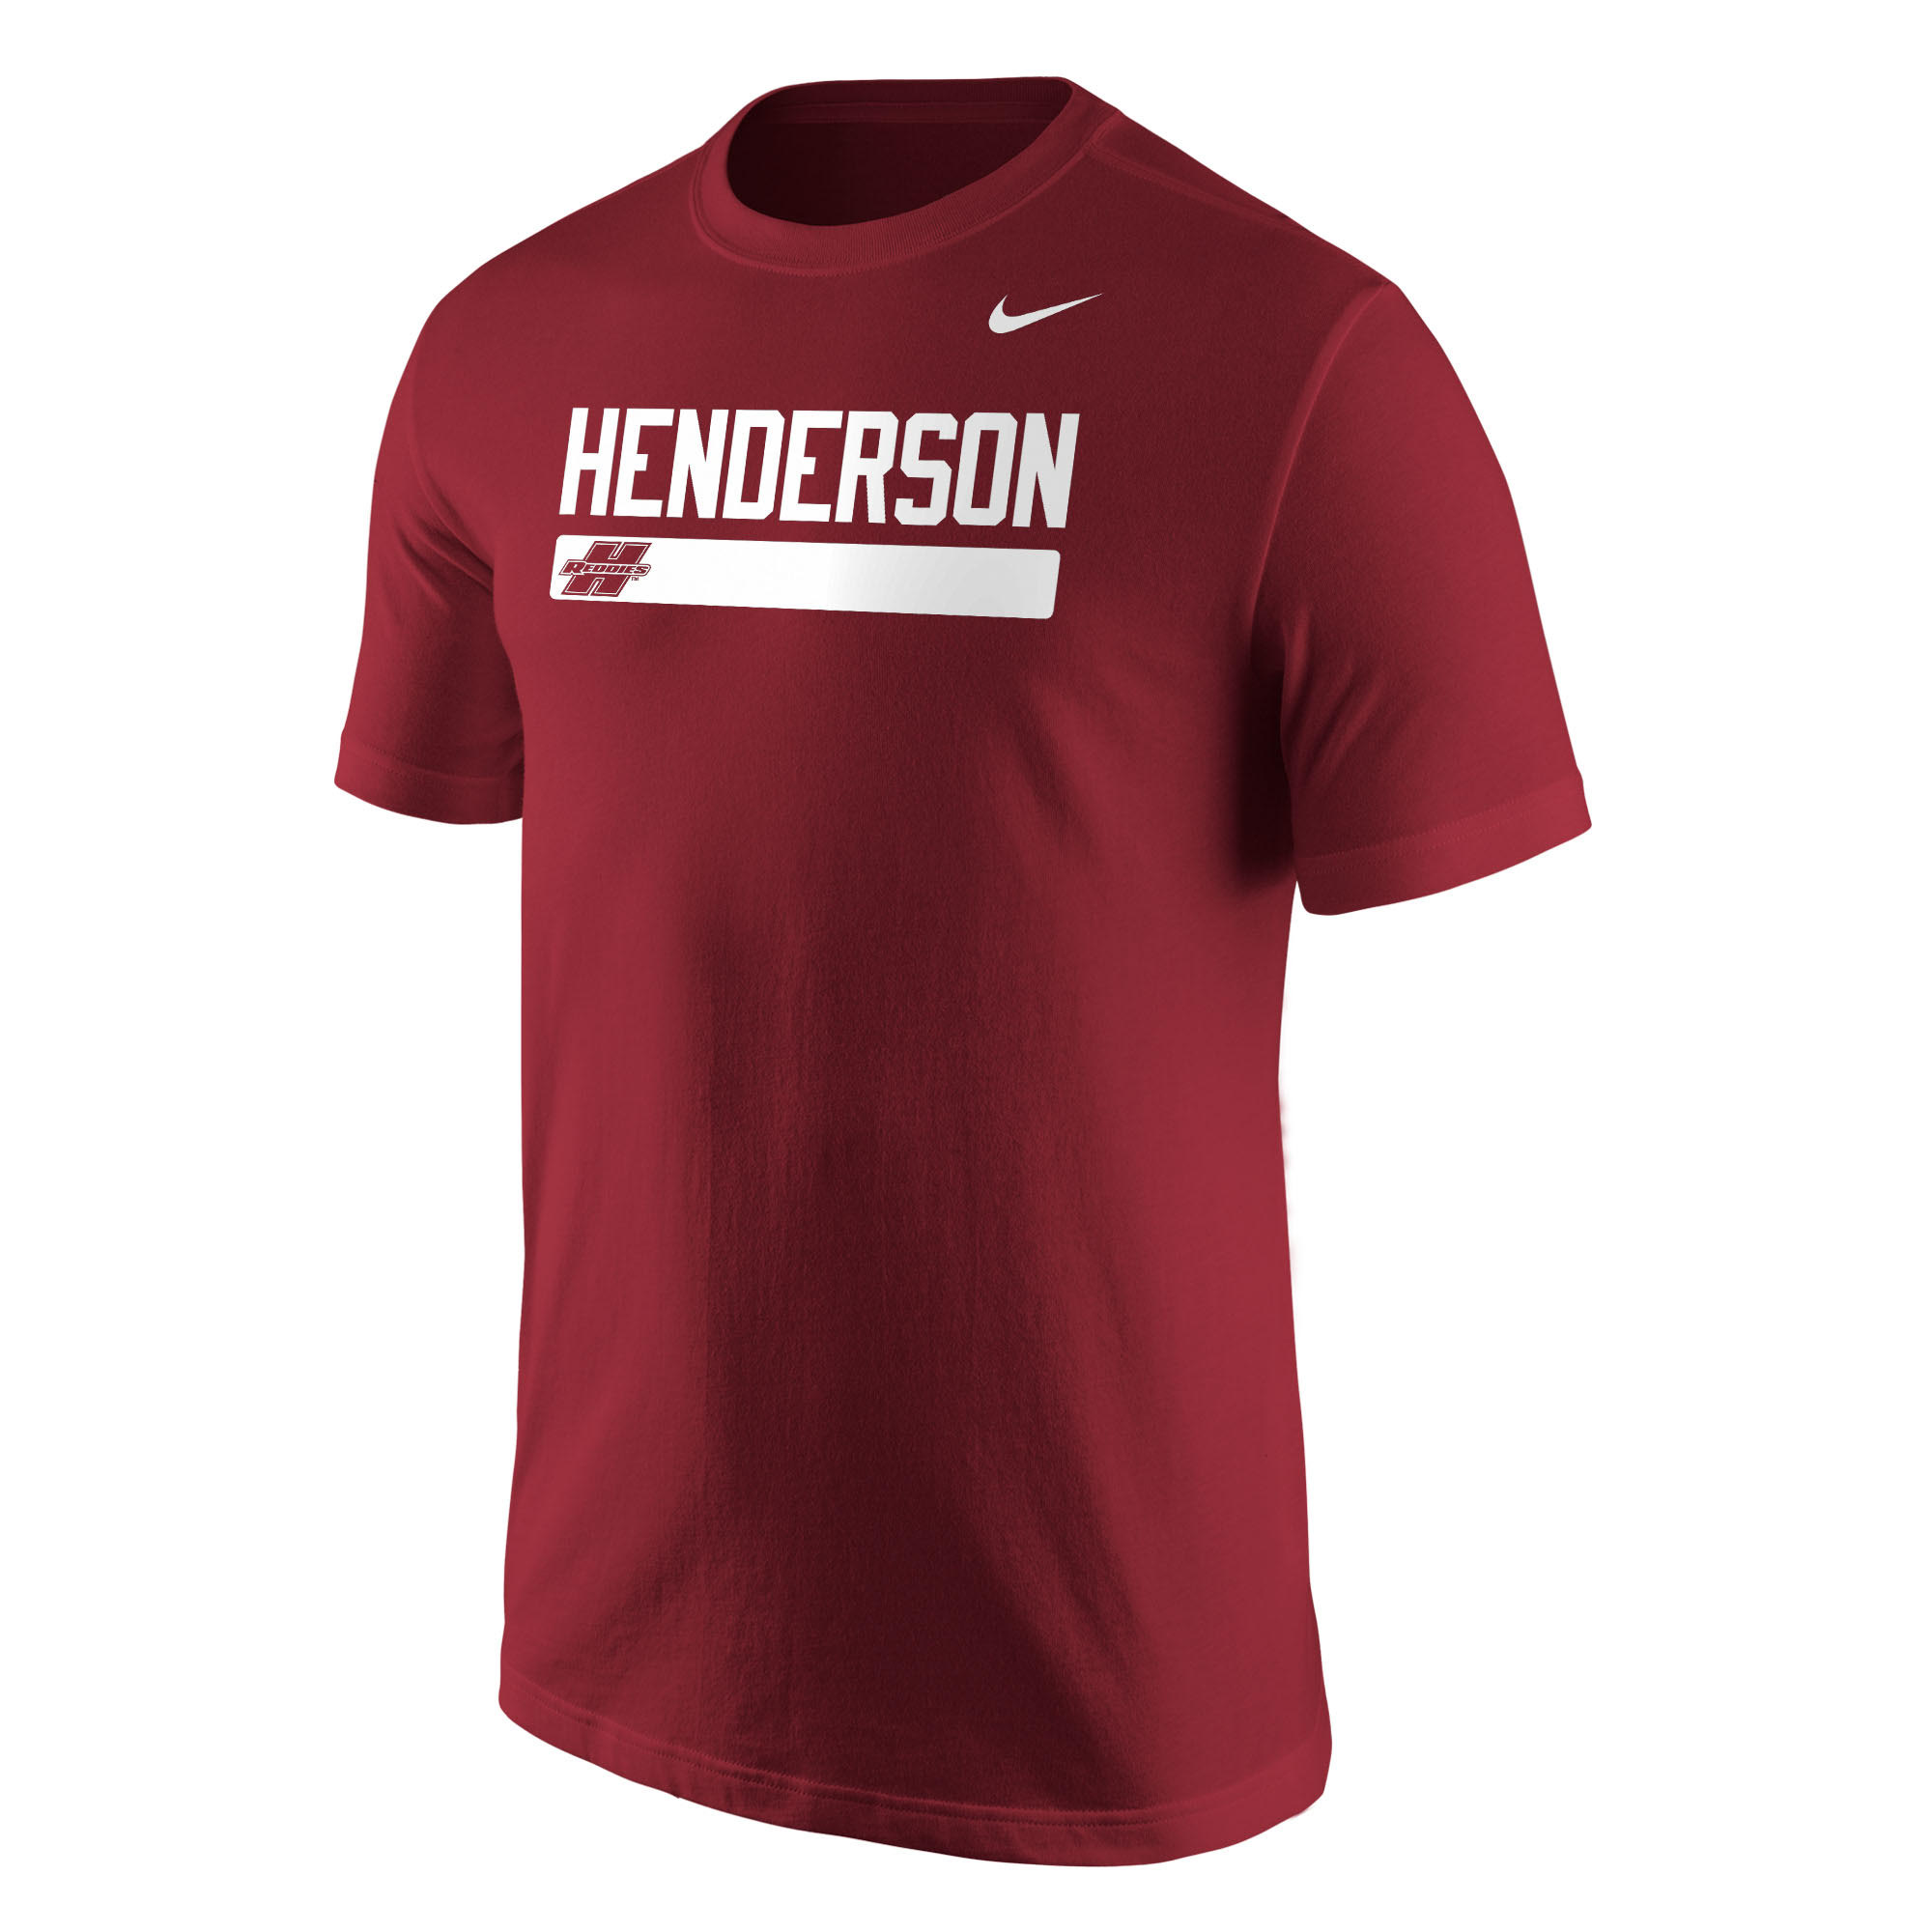 Henderson Reddies Core Short Sleeve T-Shirt